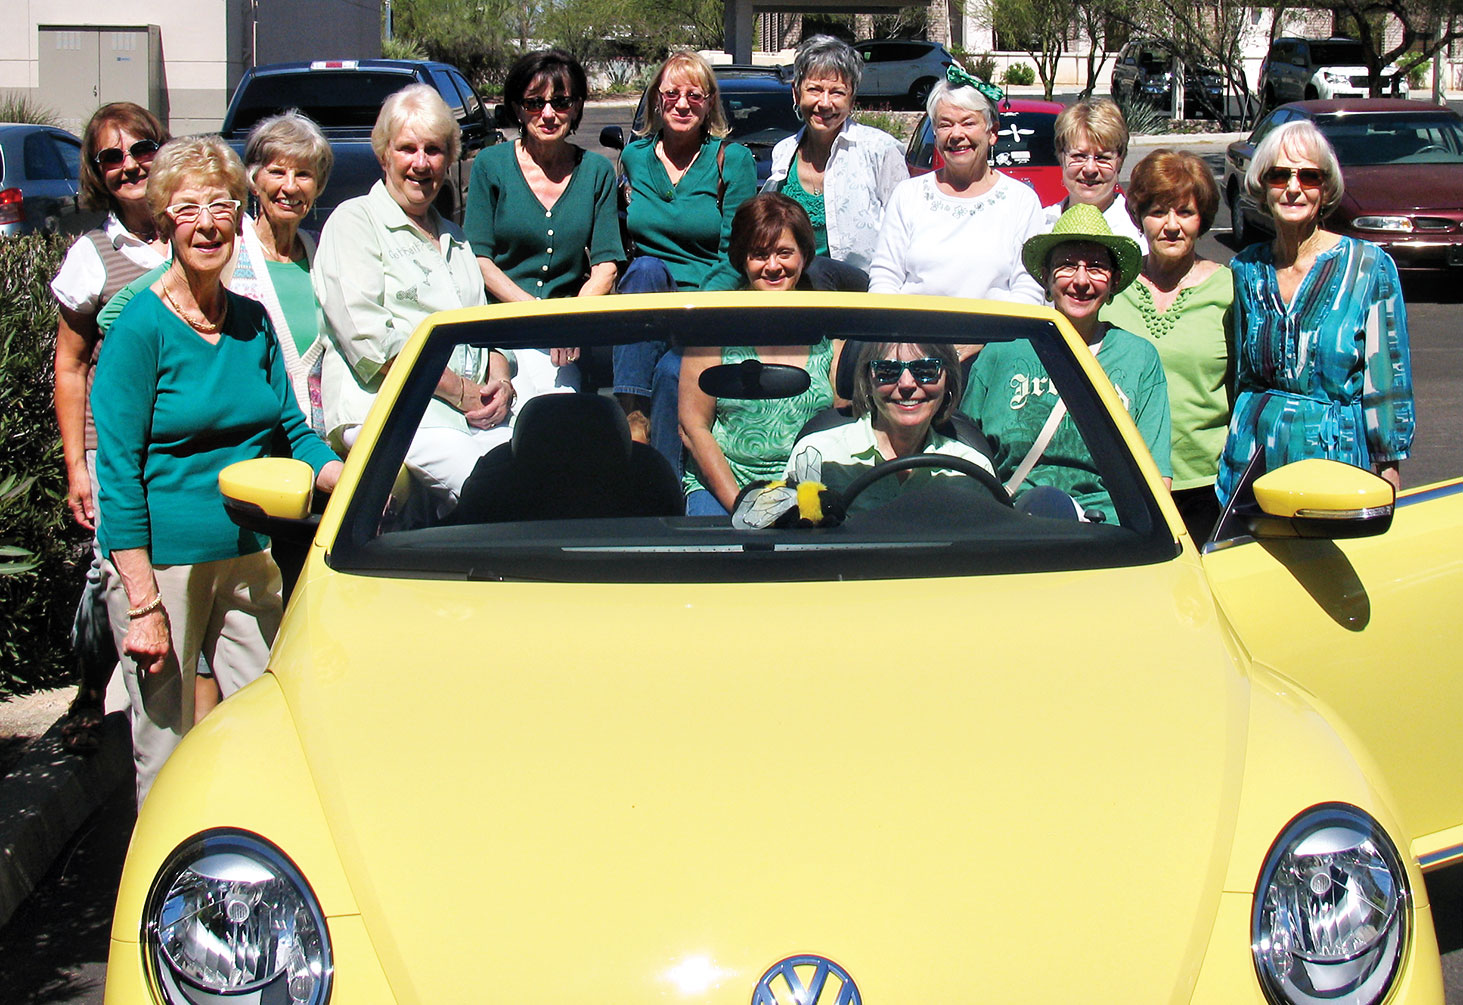 SaddleBrooke Line Dancers try to squeeze into a Volkswagen Beetle.